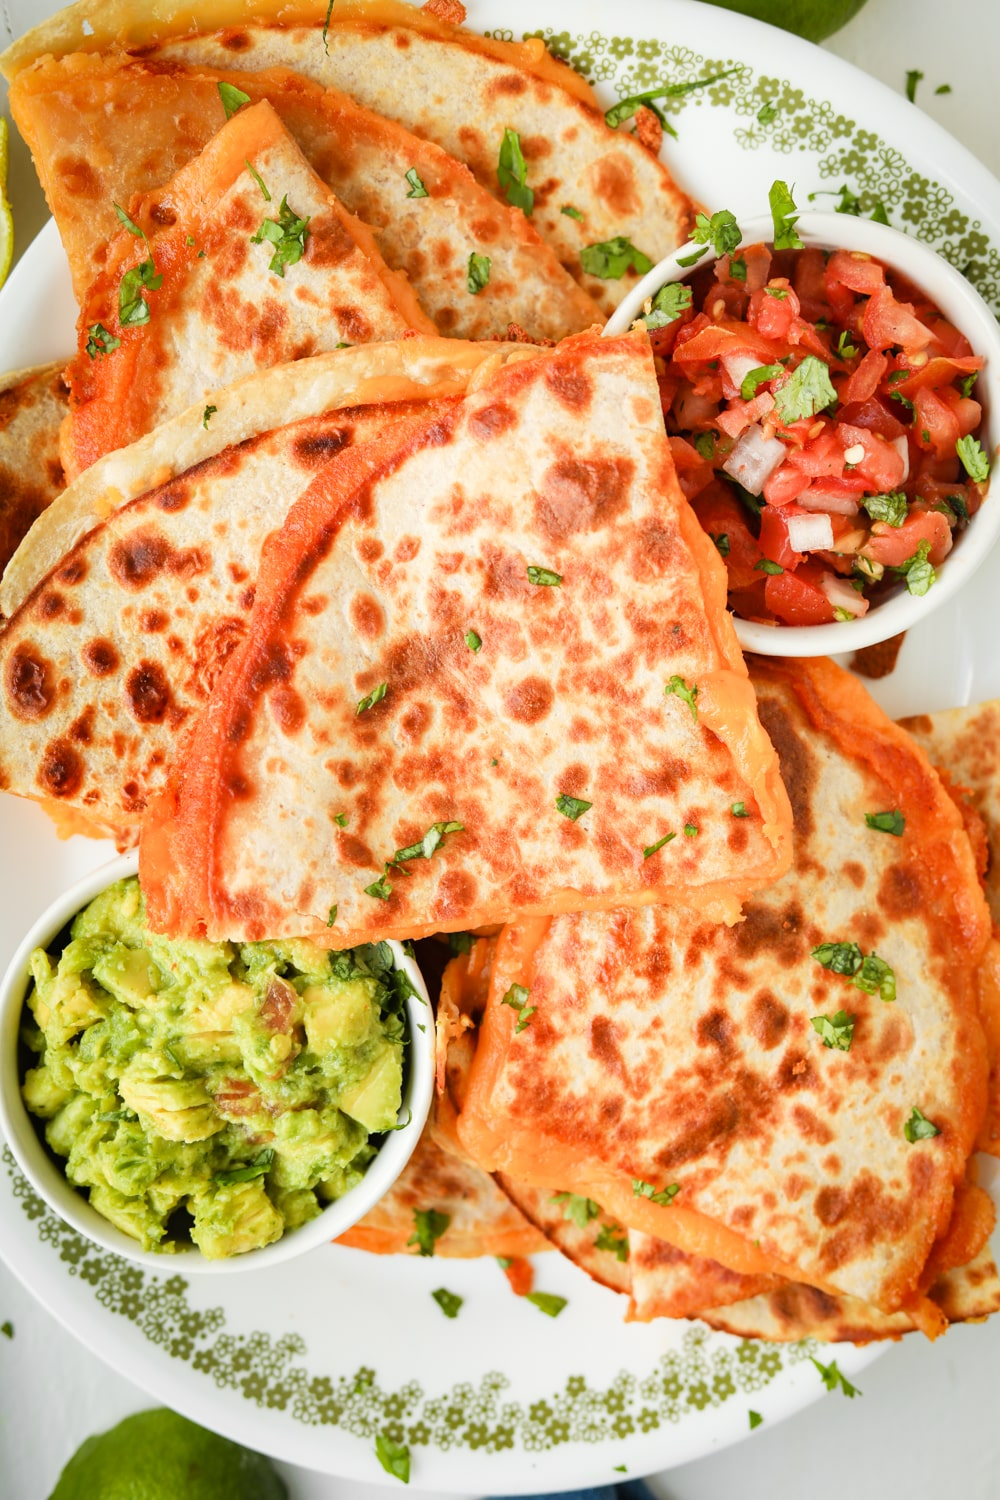 Cheddar cheese quesadillas cut up and stacked on top of each other on a white plate.